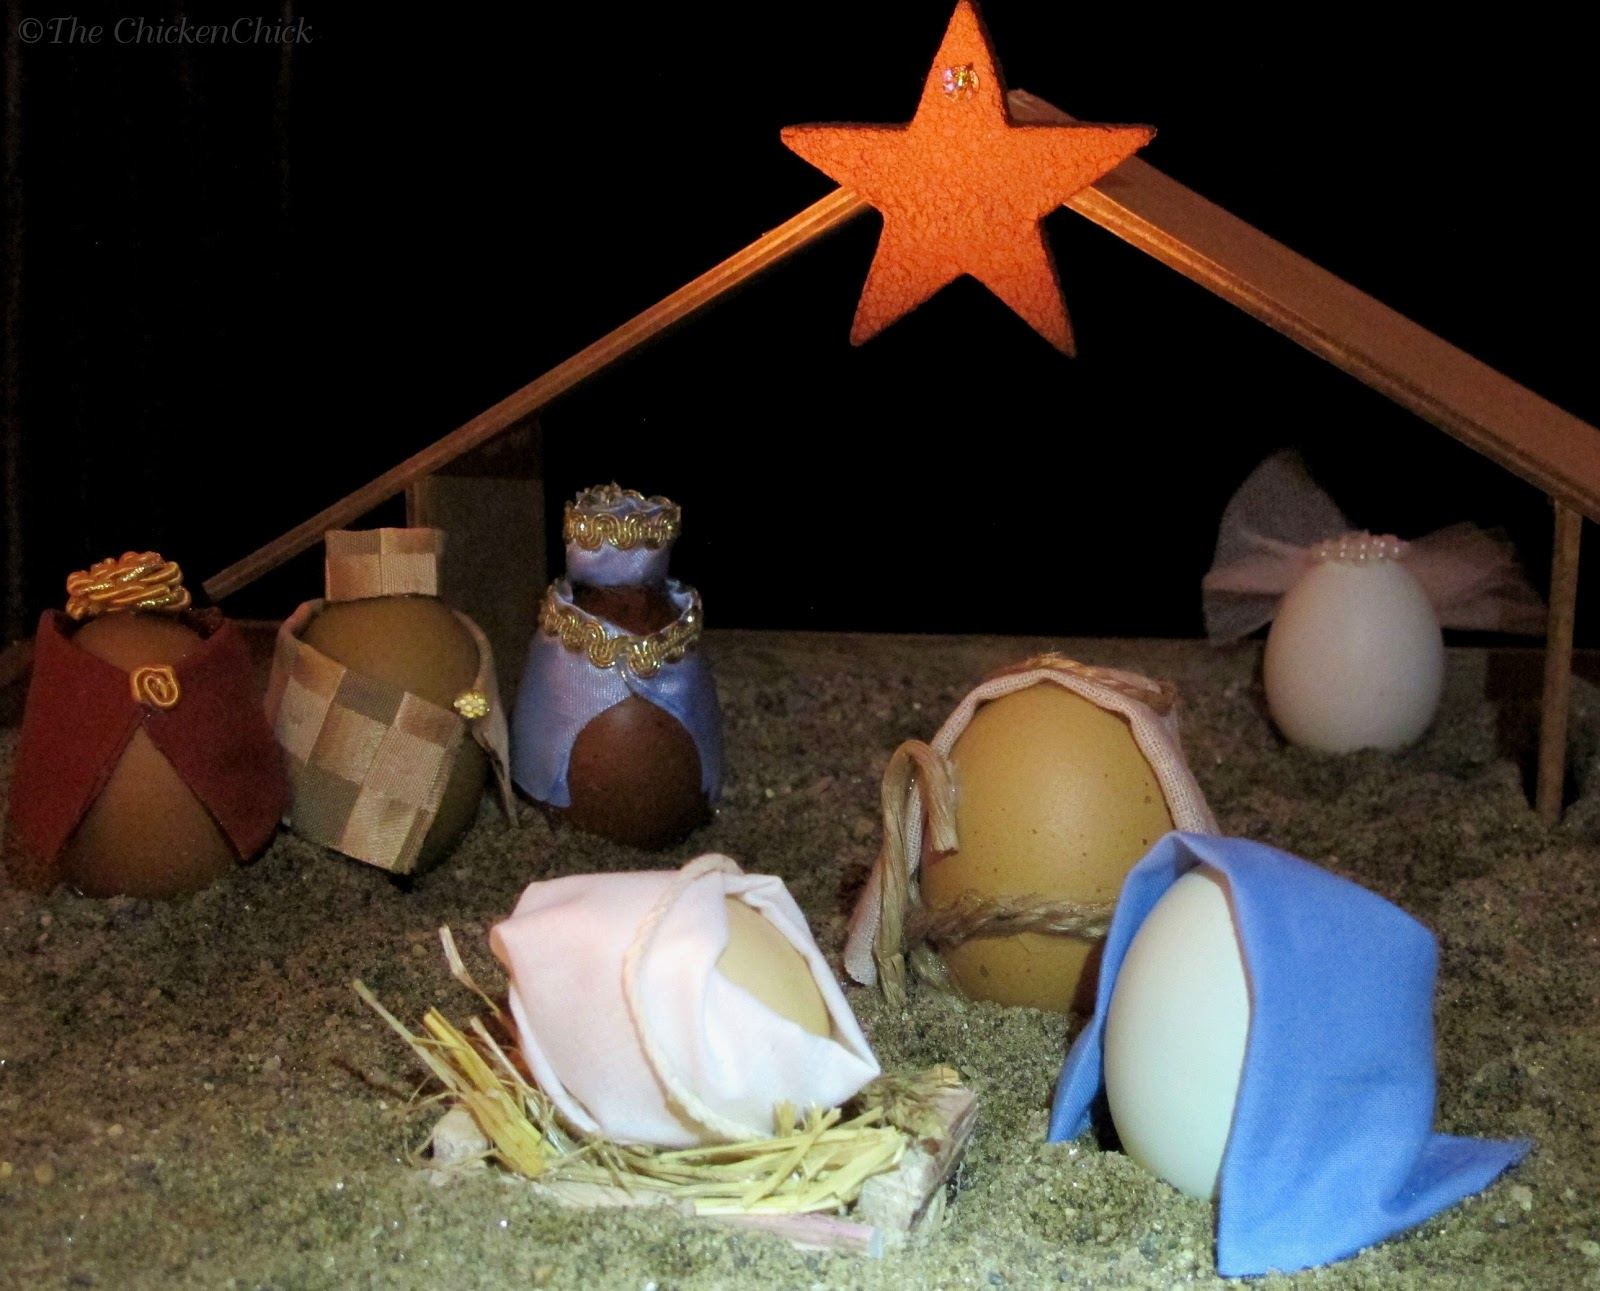 Diy blown egg nativity scene the reason for the season the diy blown egg nativity scene the reason for the season the chicken chick solutioingenieria